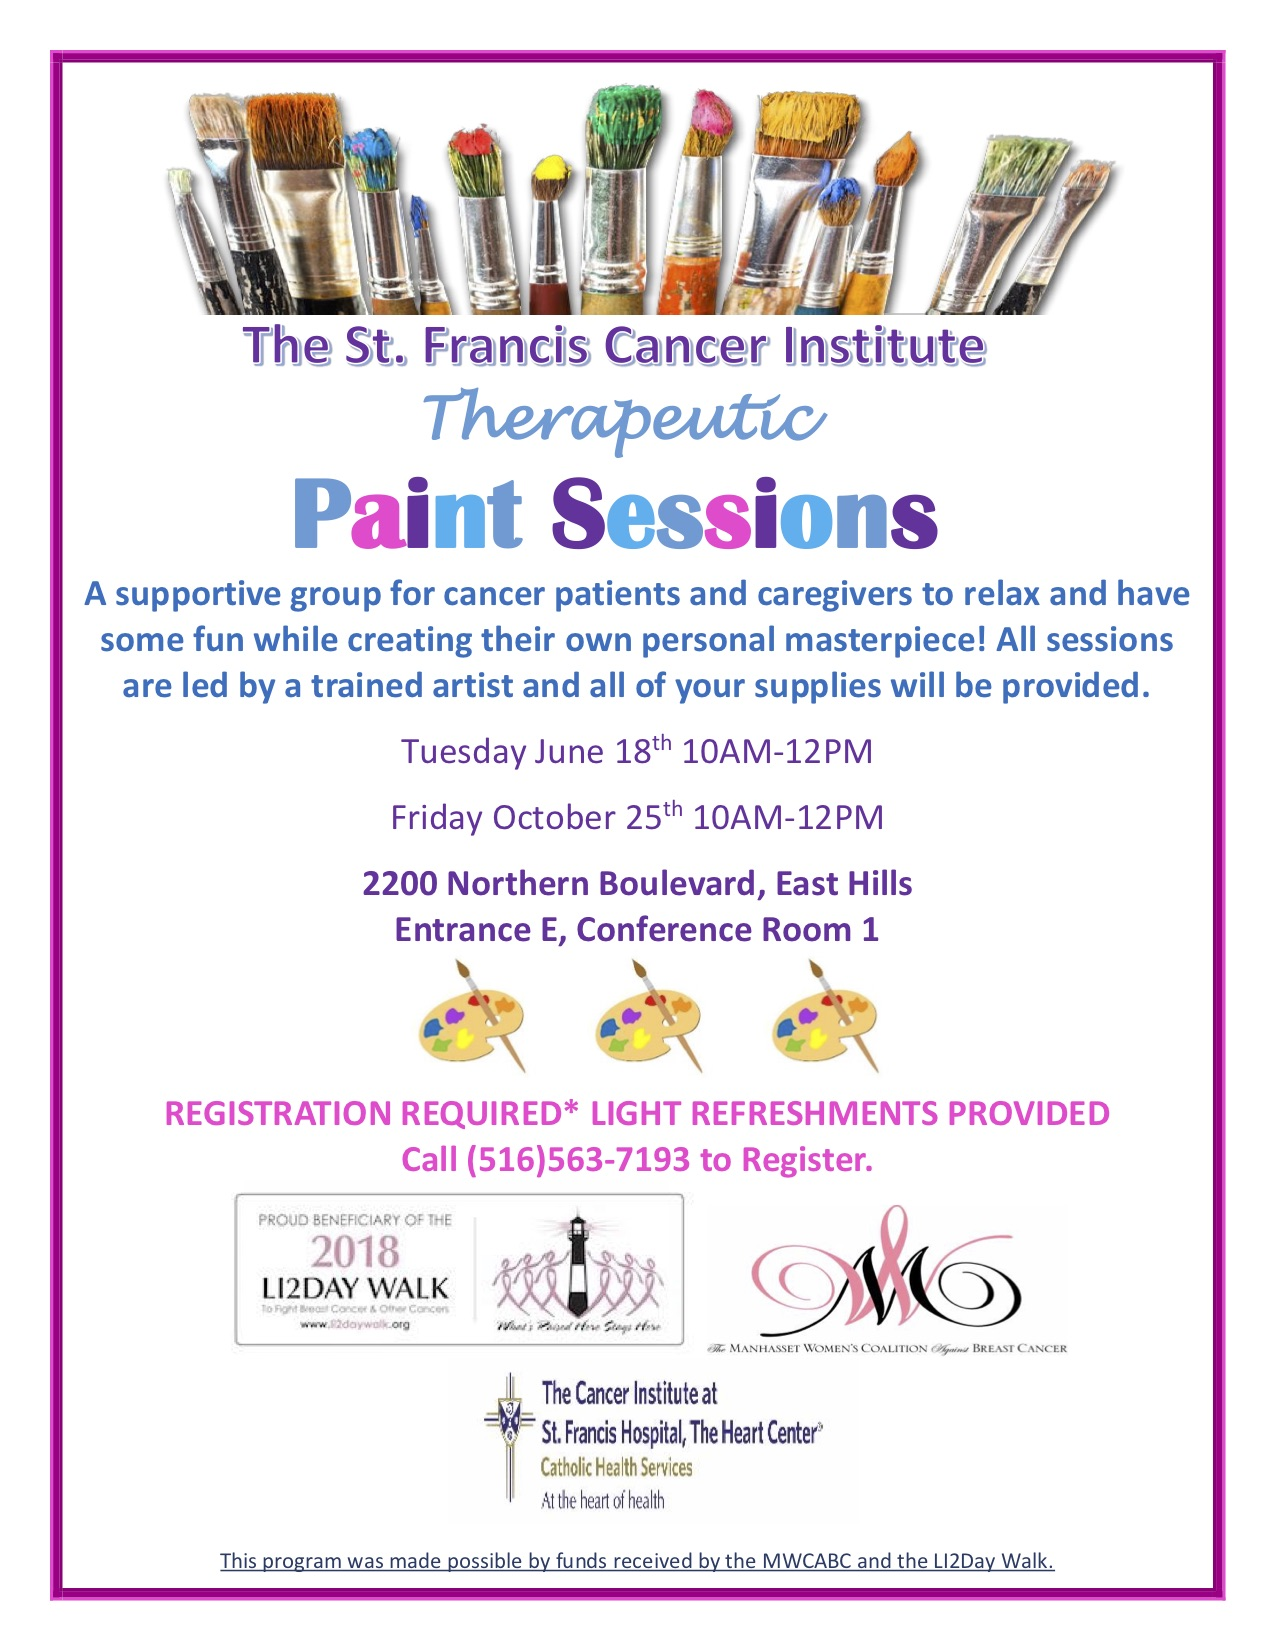 The St. Francis Cancer Institute Therapeutic Paint Sessions